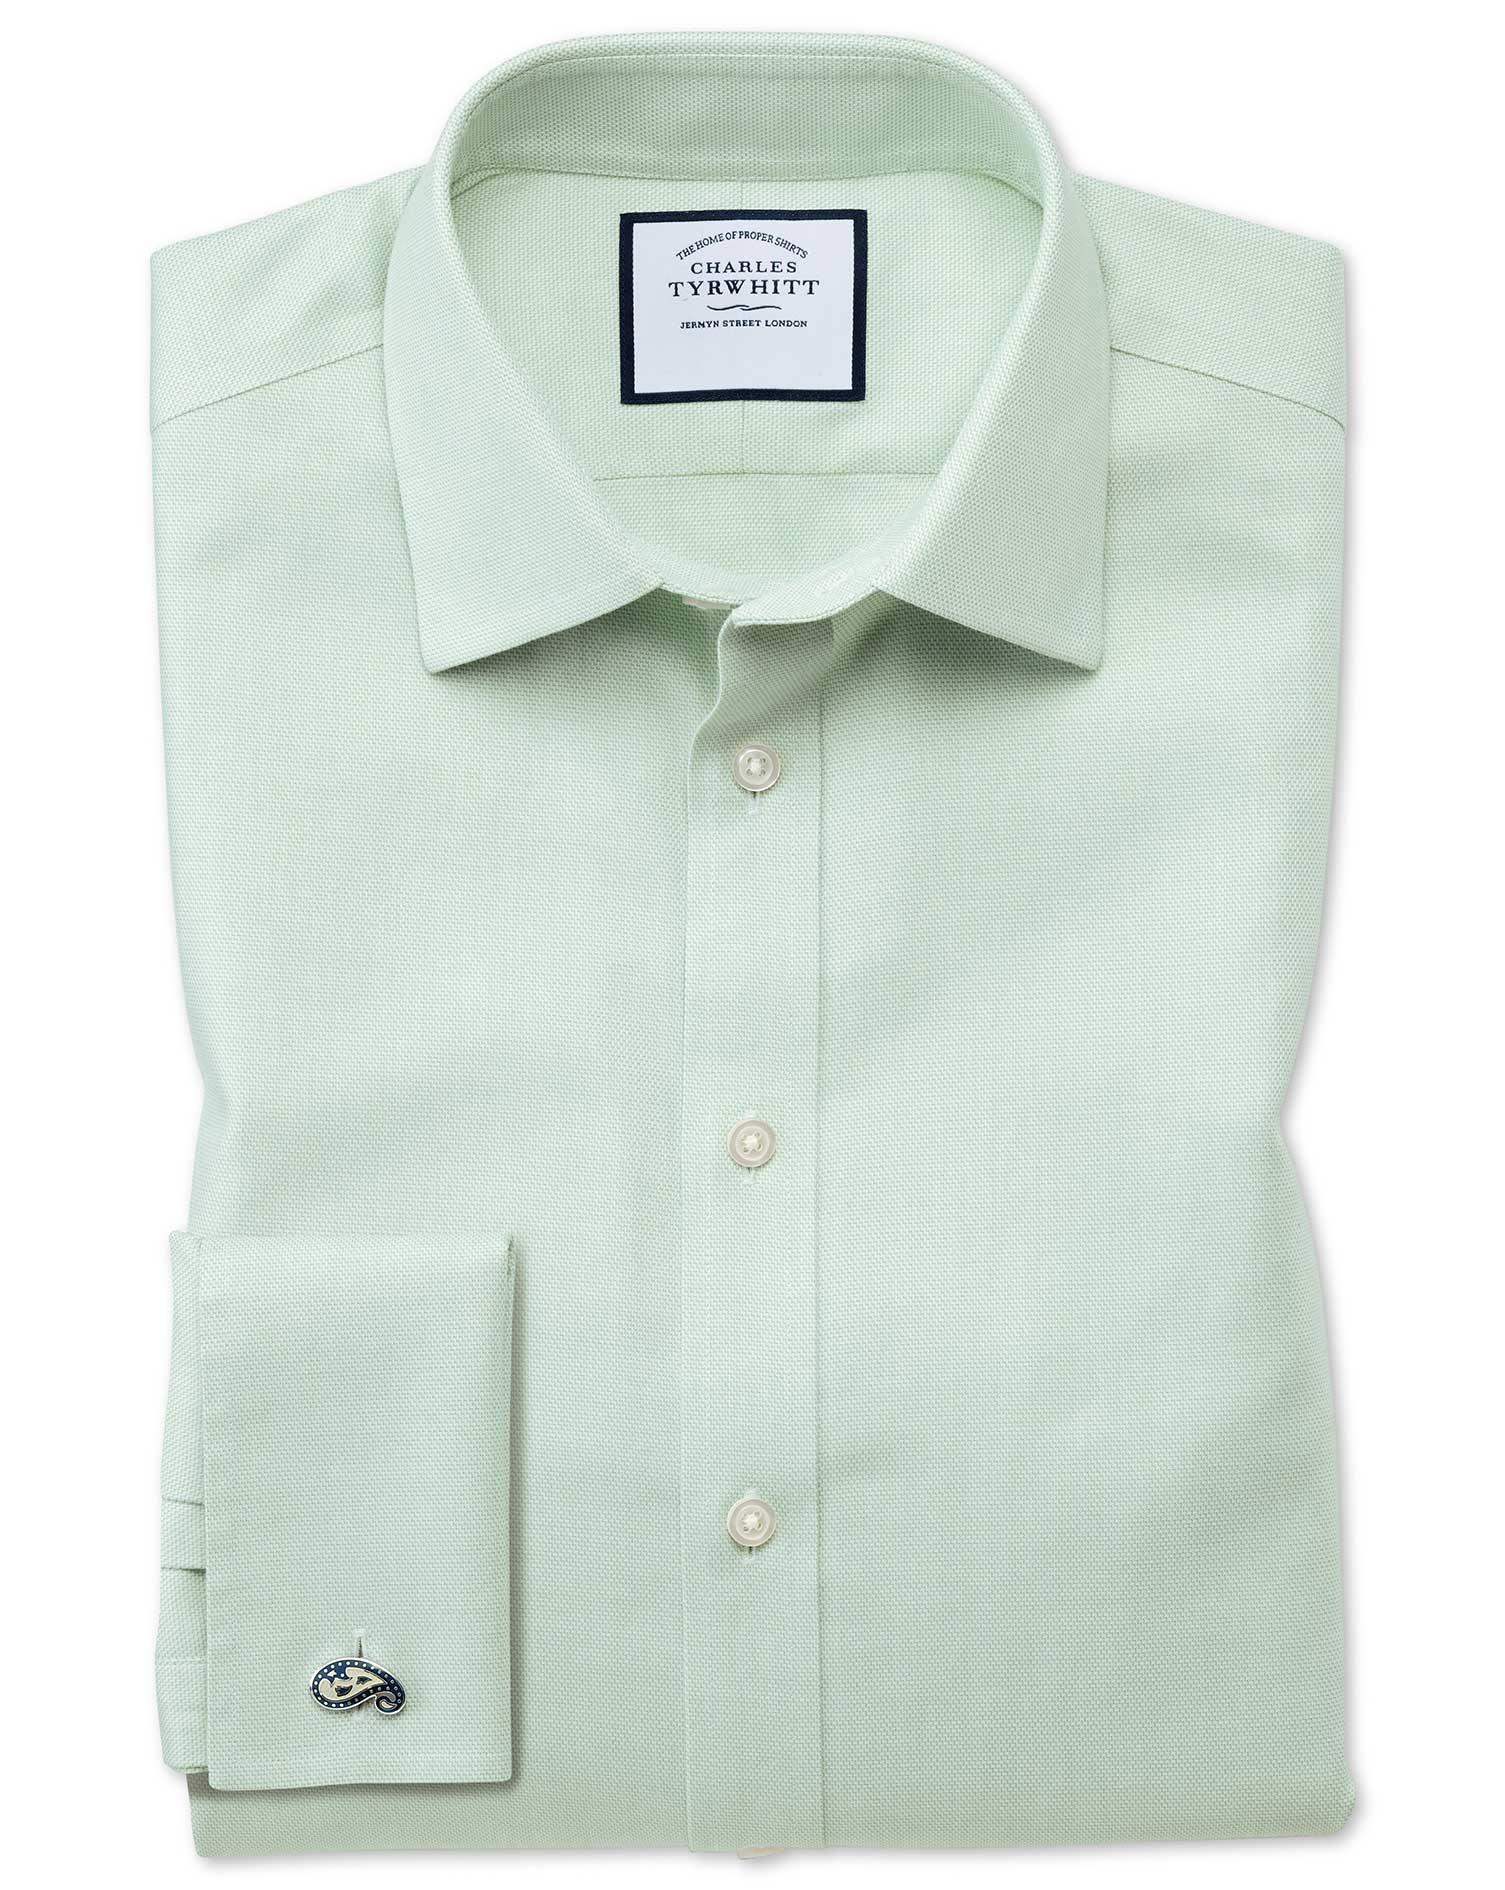 Extra Slim Fit Non-Iron Step Weave Green Cotton Formal Shirt Single Cuff Size 15.5/33 by Charles Tyr